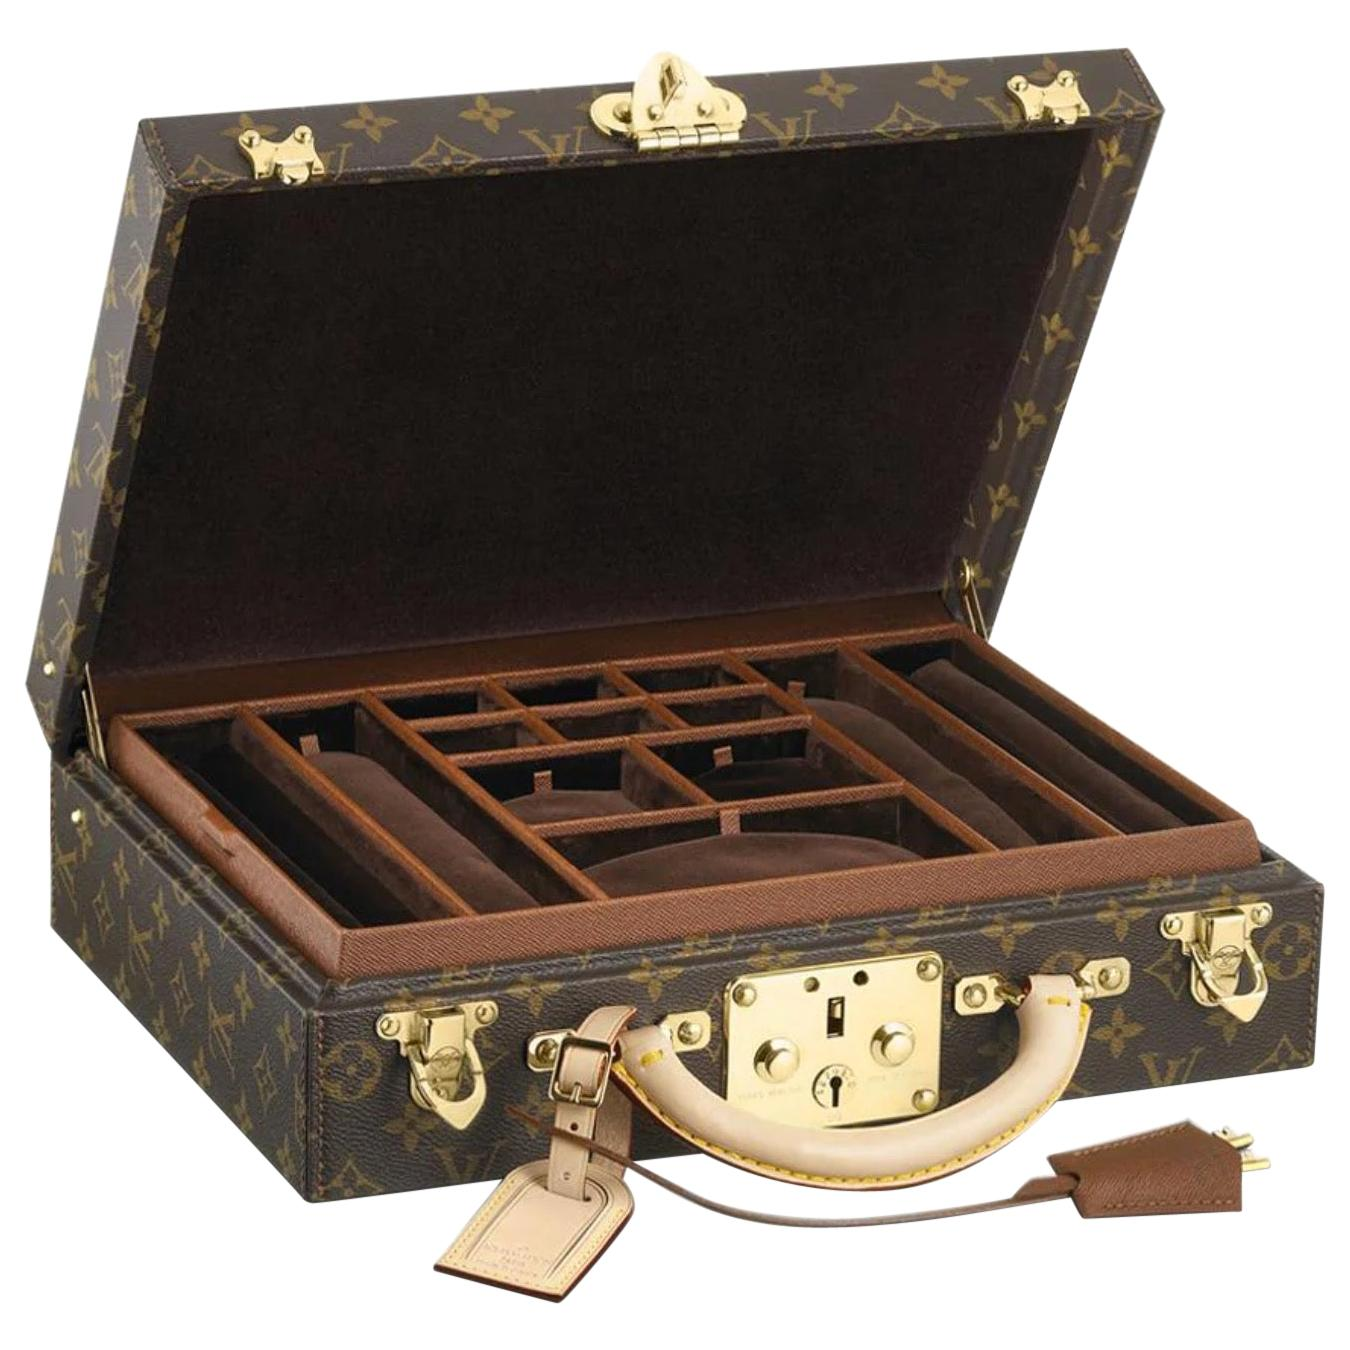 Louis Vuitton NEW Monogram Men's Women's Jewelry Watch Vanity Travel Trunk Case